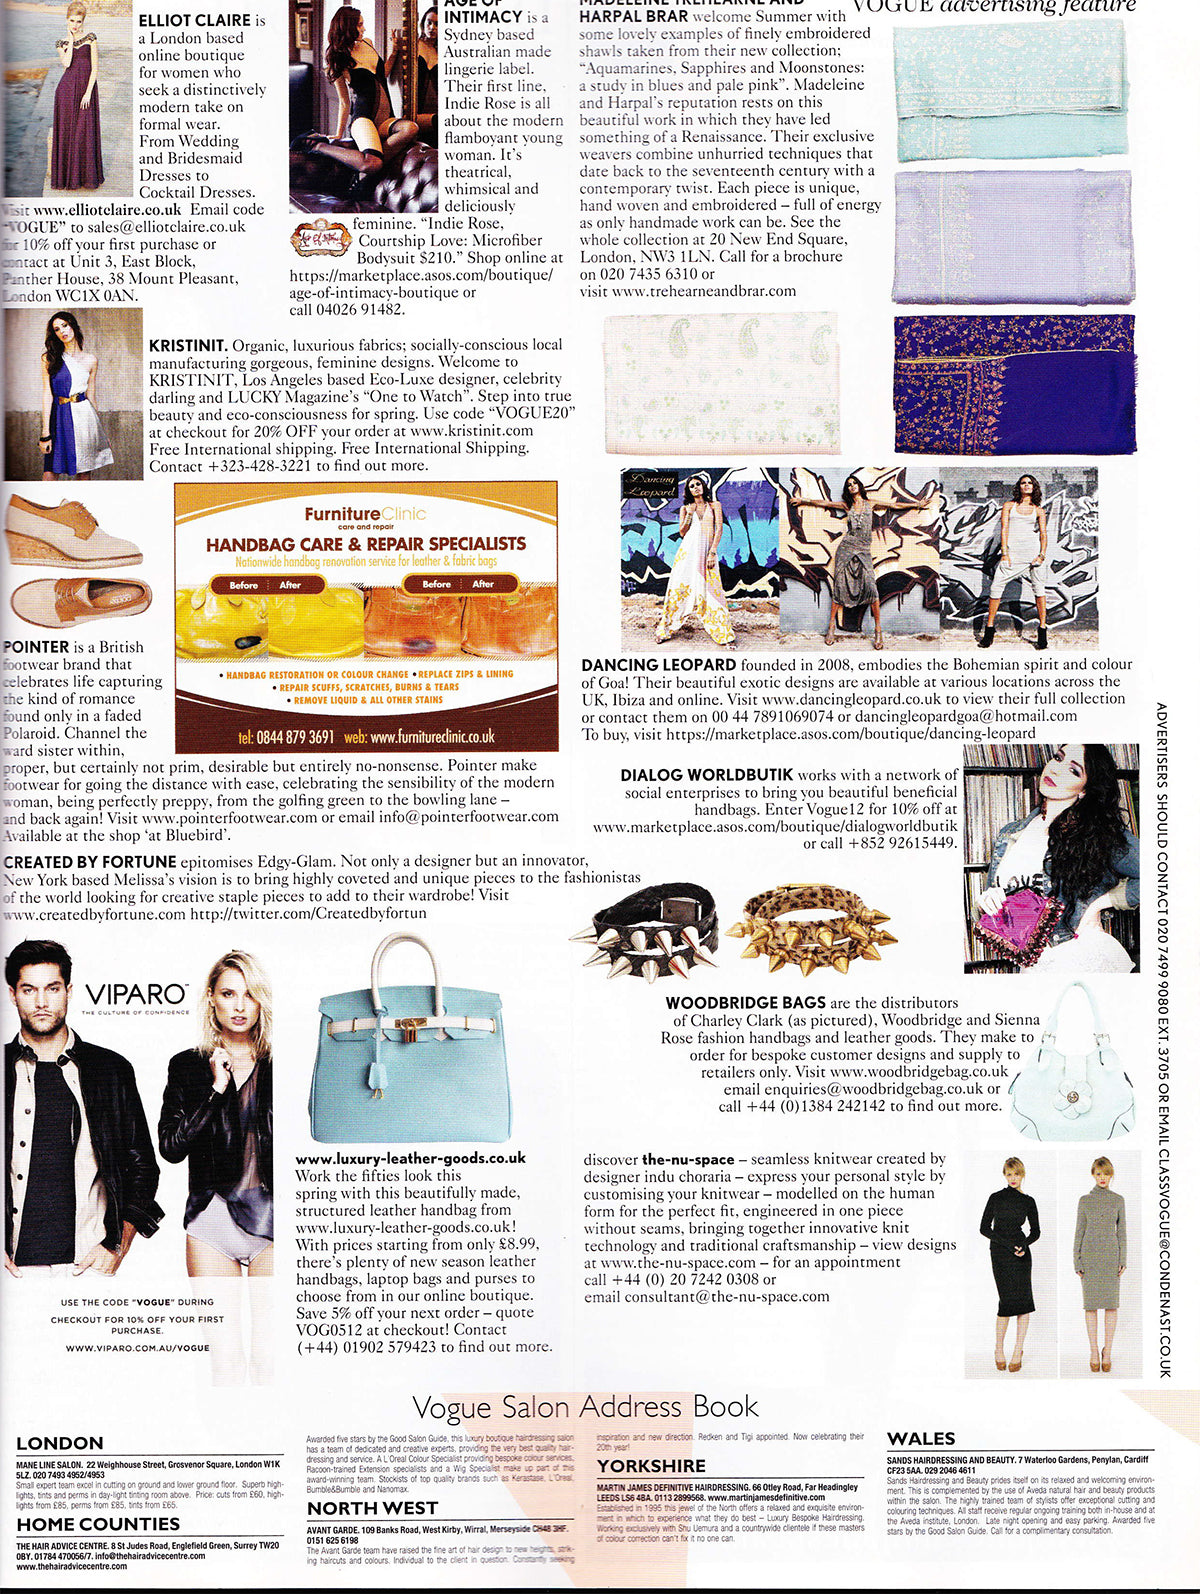 British Vogue May 2012 – Created by Fortune